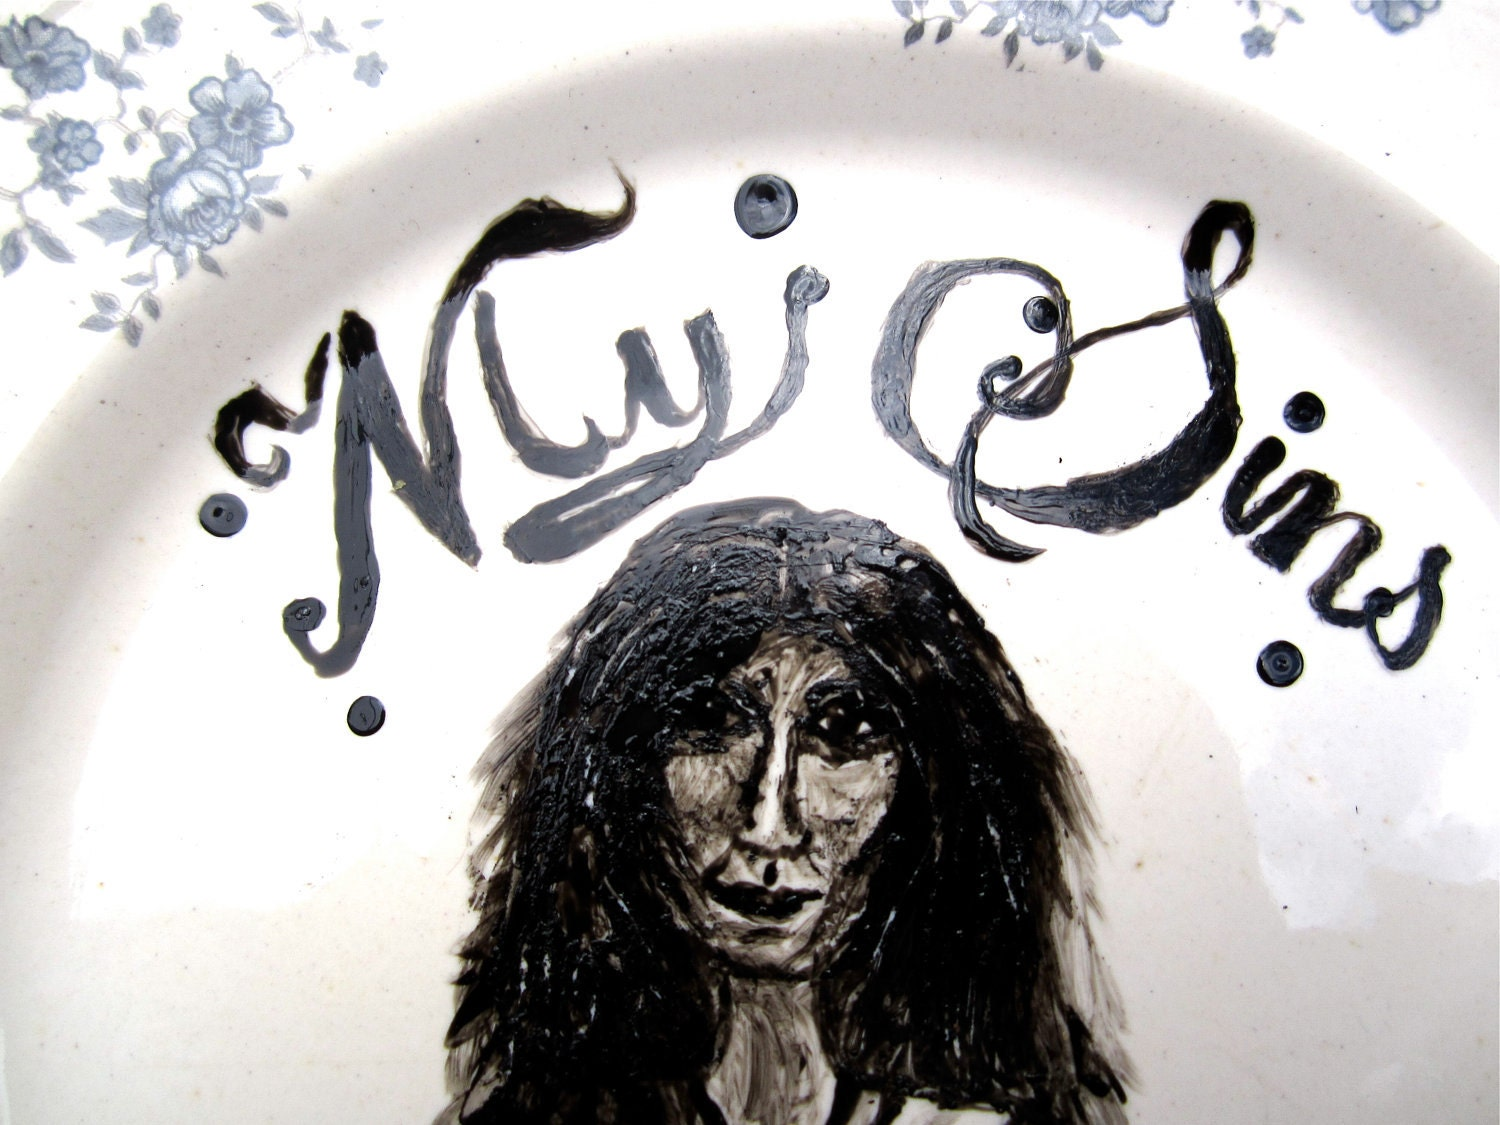 PATTI SMITH punk rock portrait on Porcelain. Hand Painted portrait. Unique punk Home Decor. Feminist. Subversive Ceramics. OOAK